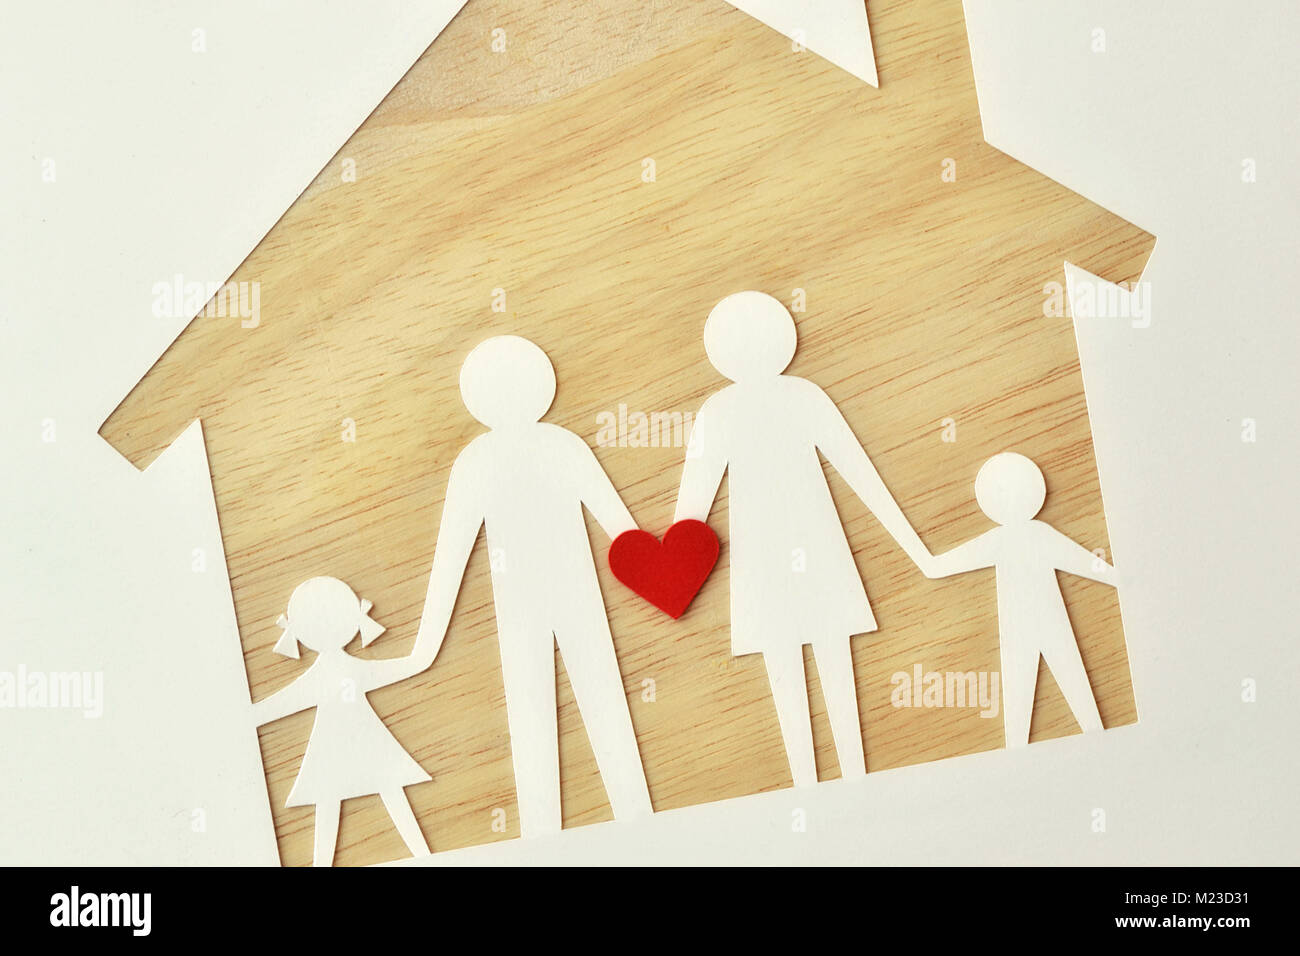 Paper family cut-out and house - Love and family union concept Stock Photo